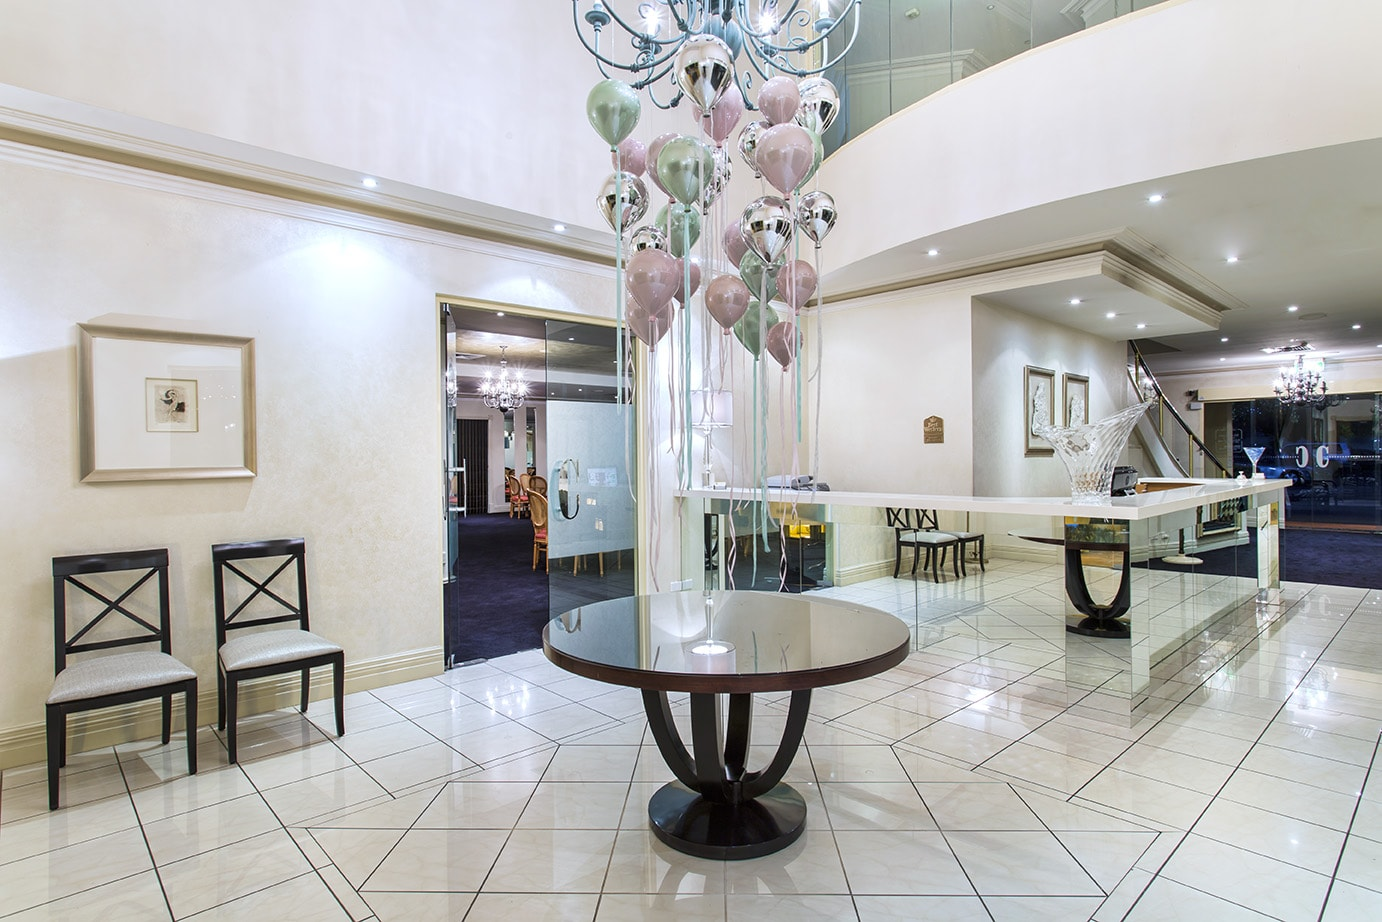 best-western-plus-the-carrington-shepparton-hotel-accommodation-interior-3.jpg